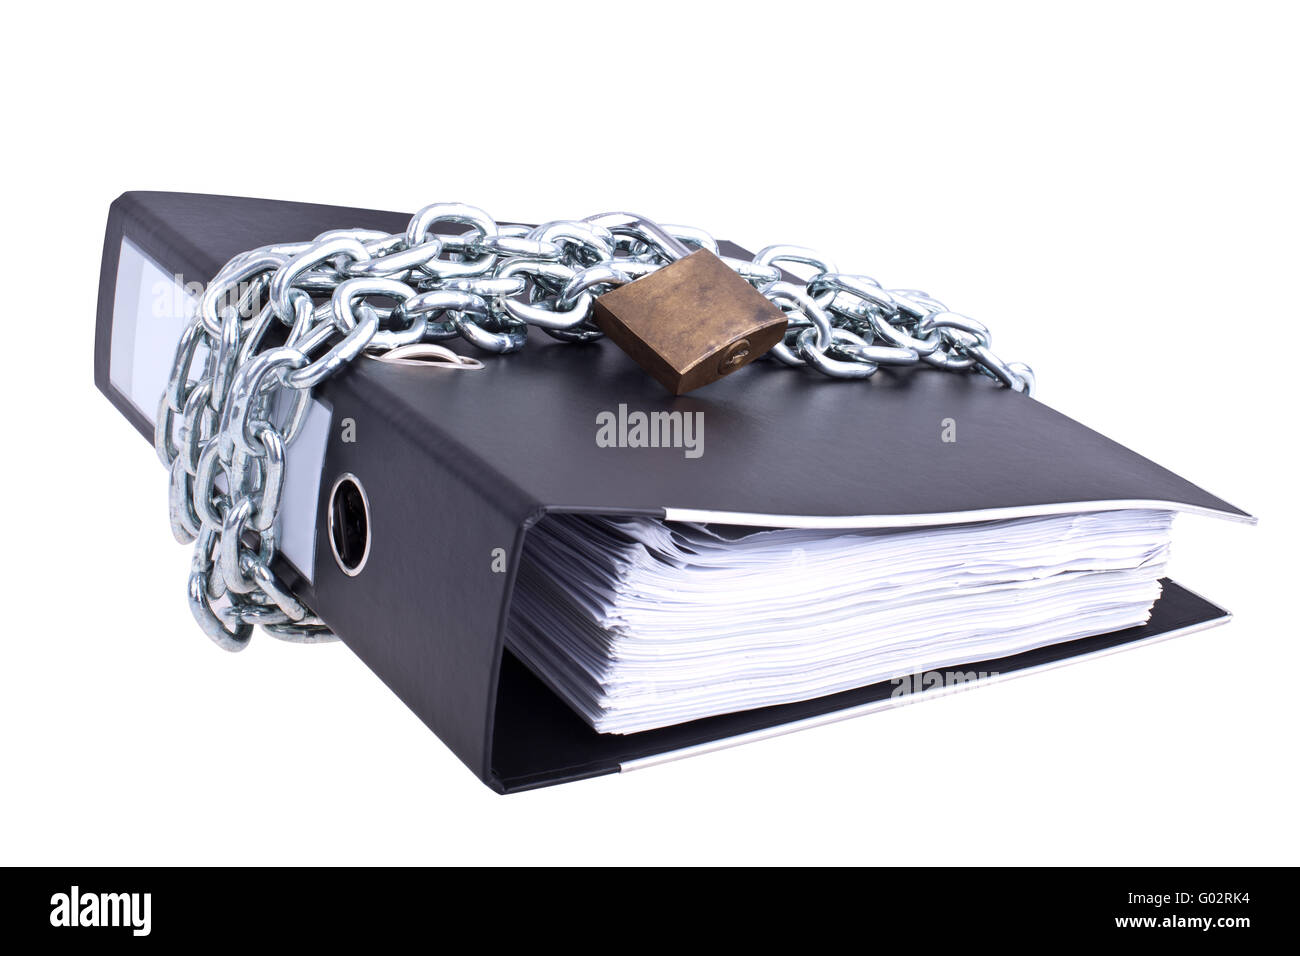 Data Security Concept - Stock Image